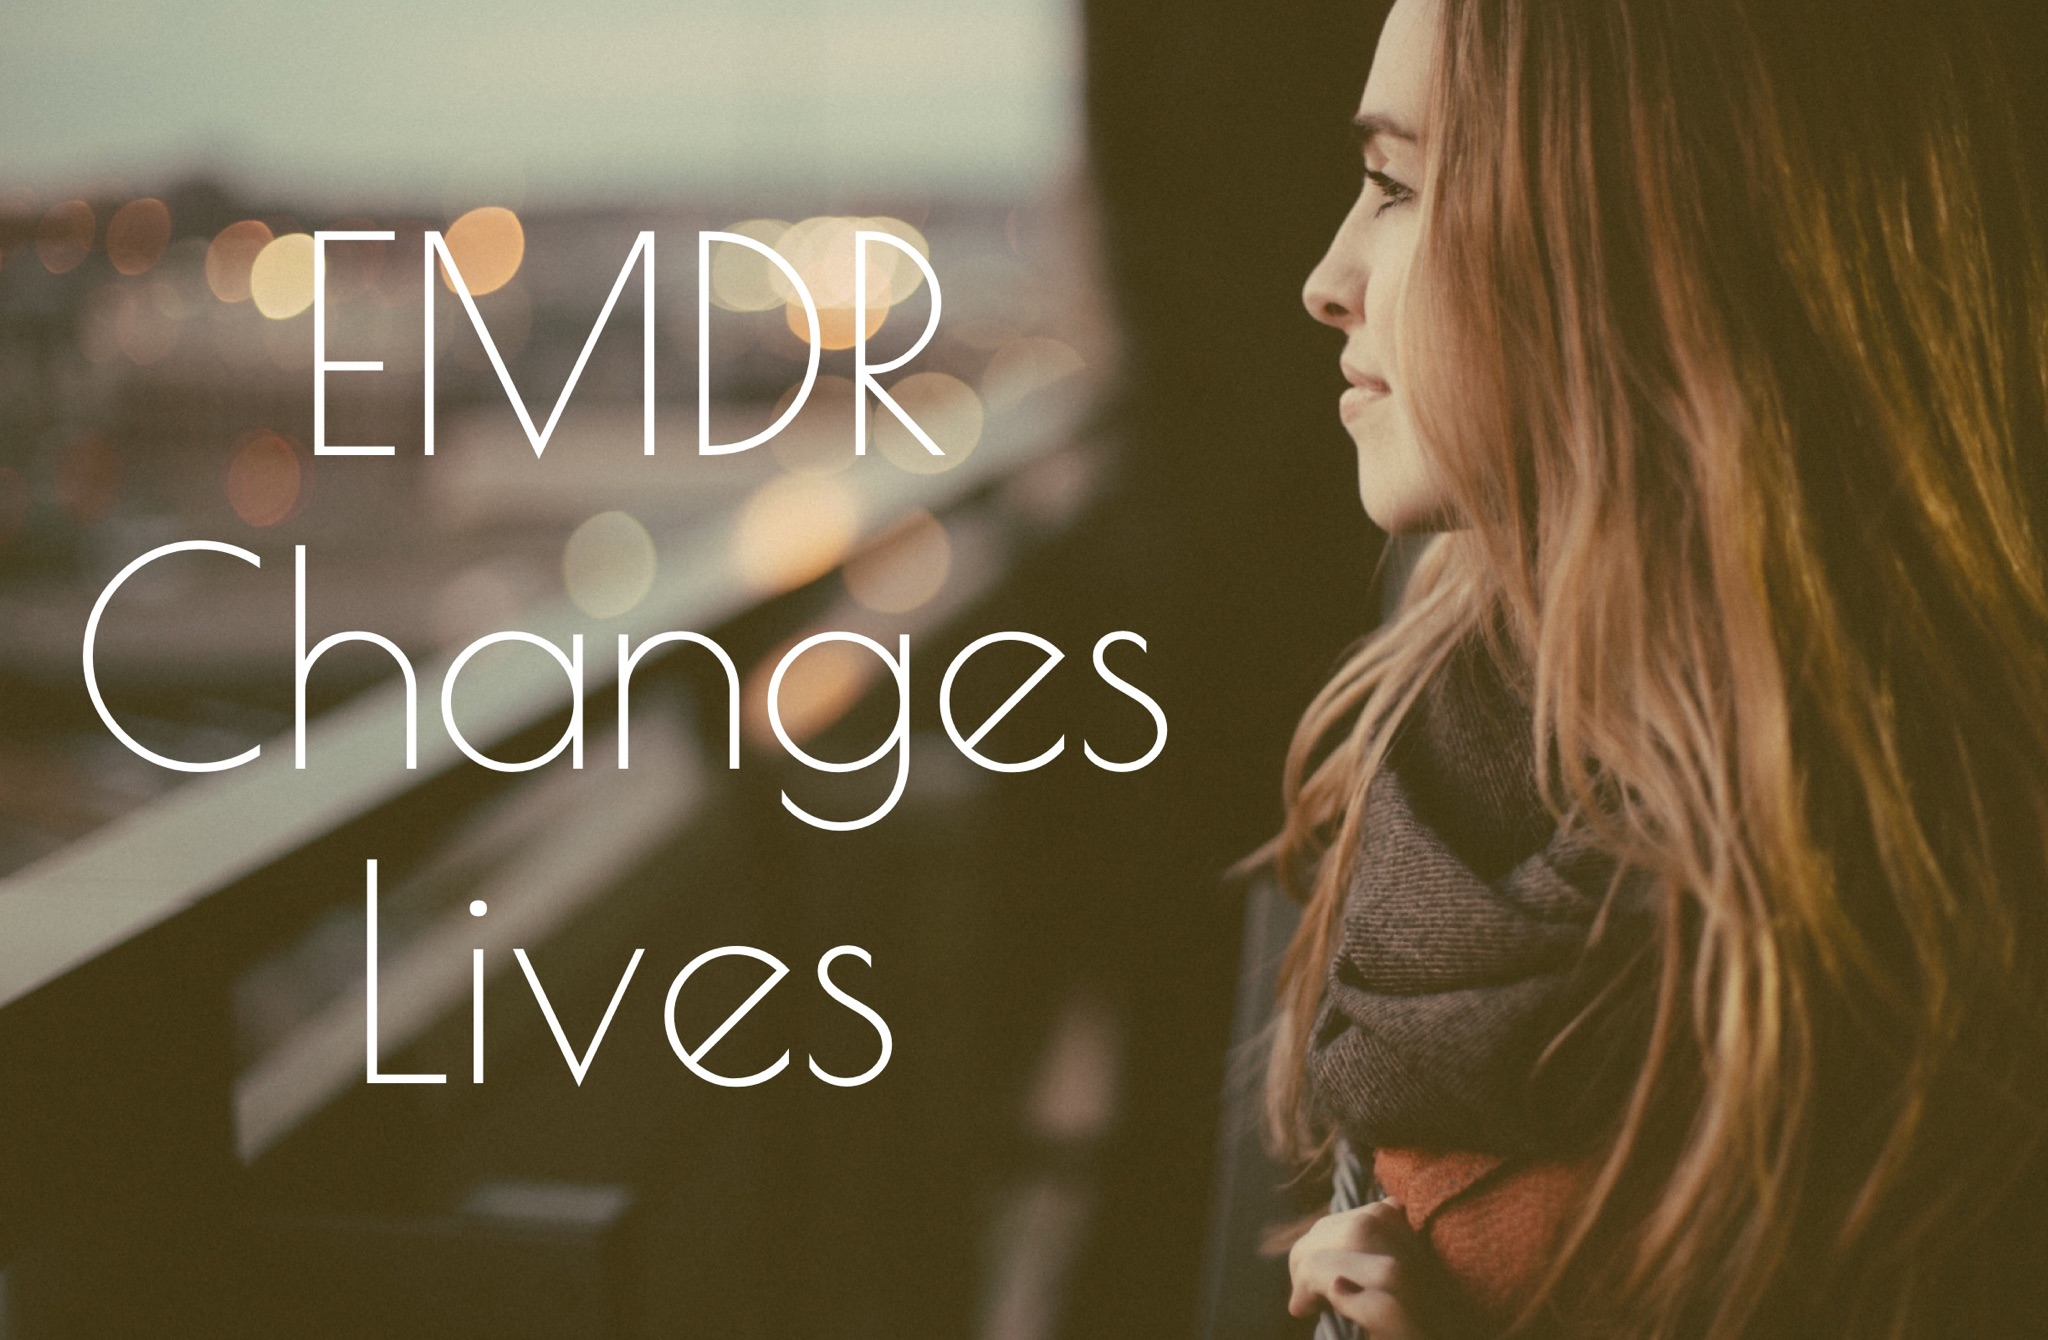 EMDR for grief and loss